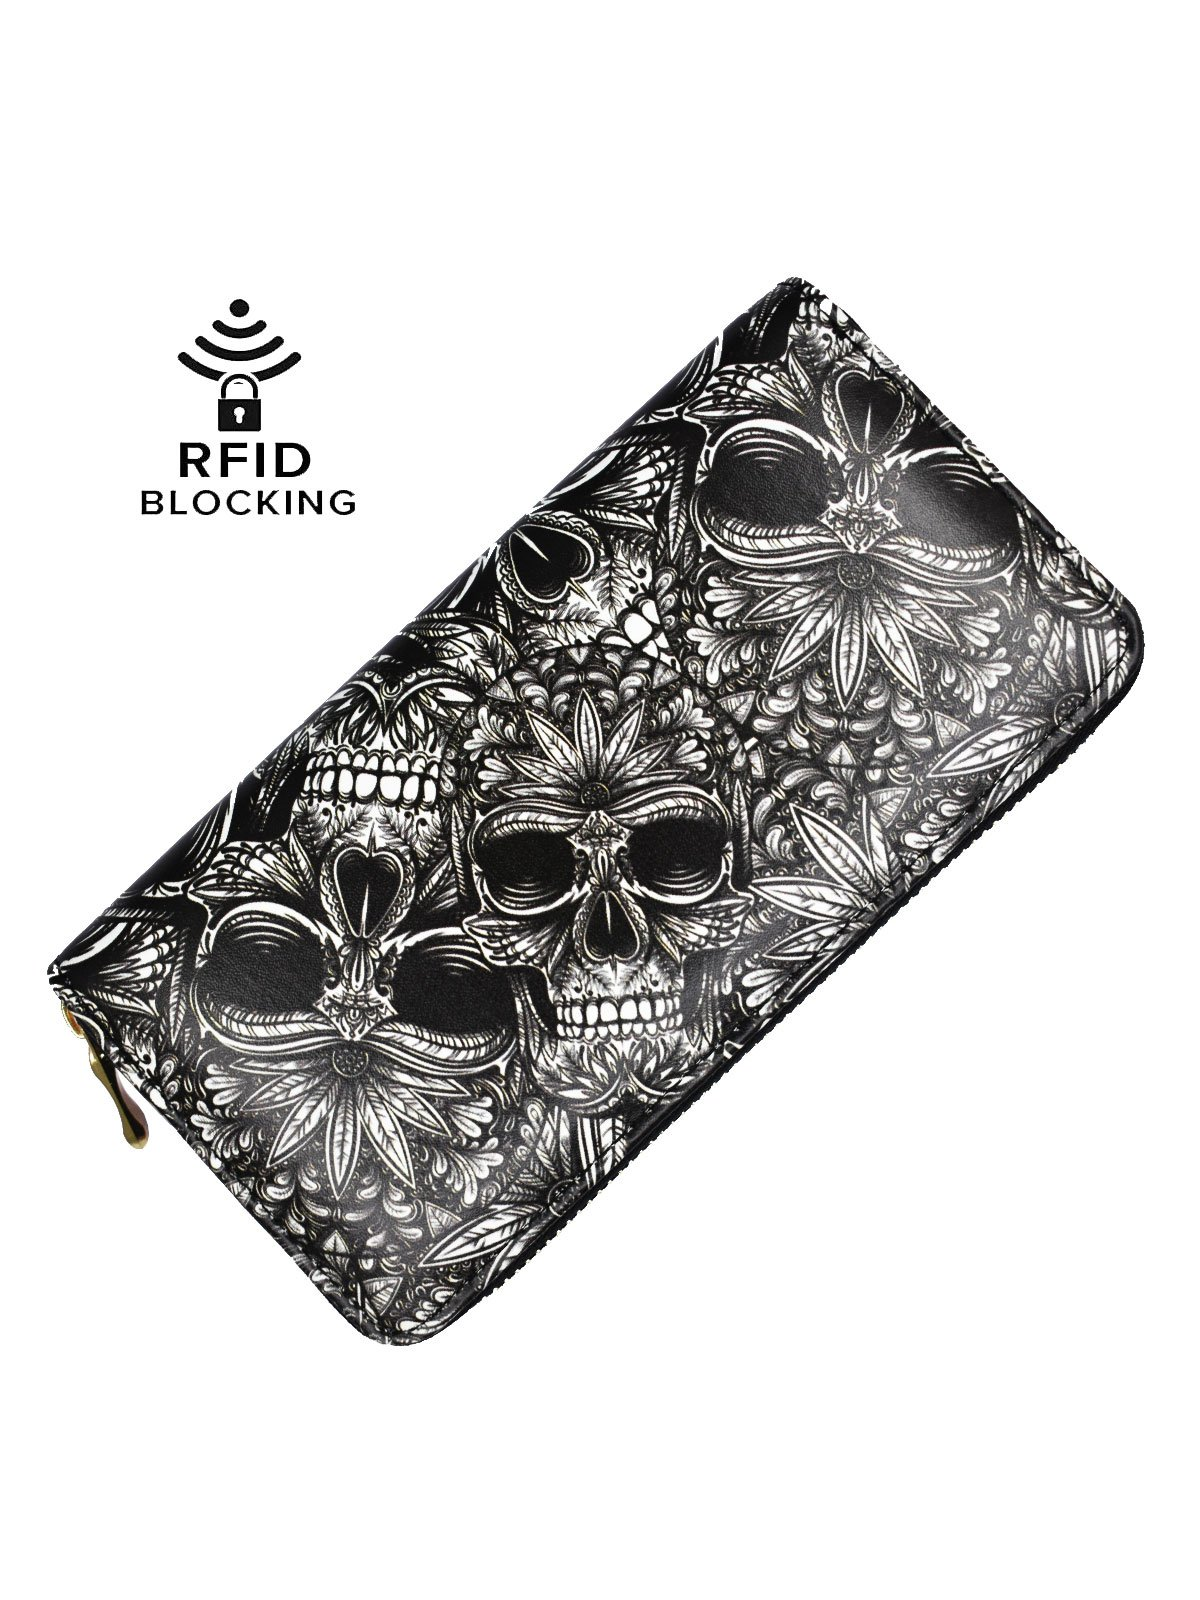 Black Wallet Skull Unisex Long Clutch Slim Credit Card Holder Case Book Leather RFID Blocking Purse Billfold Wallet for Women and Men